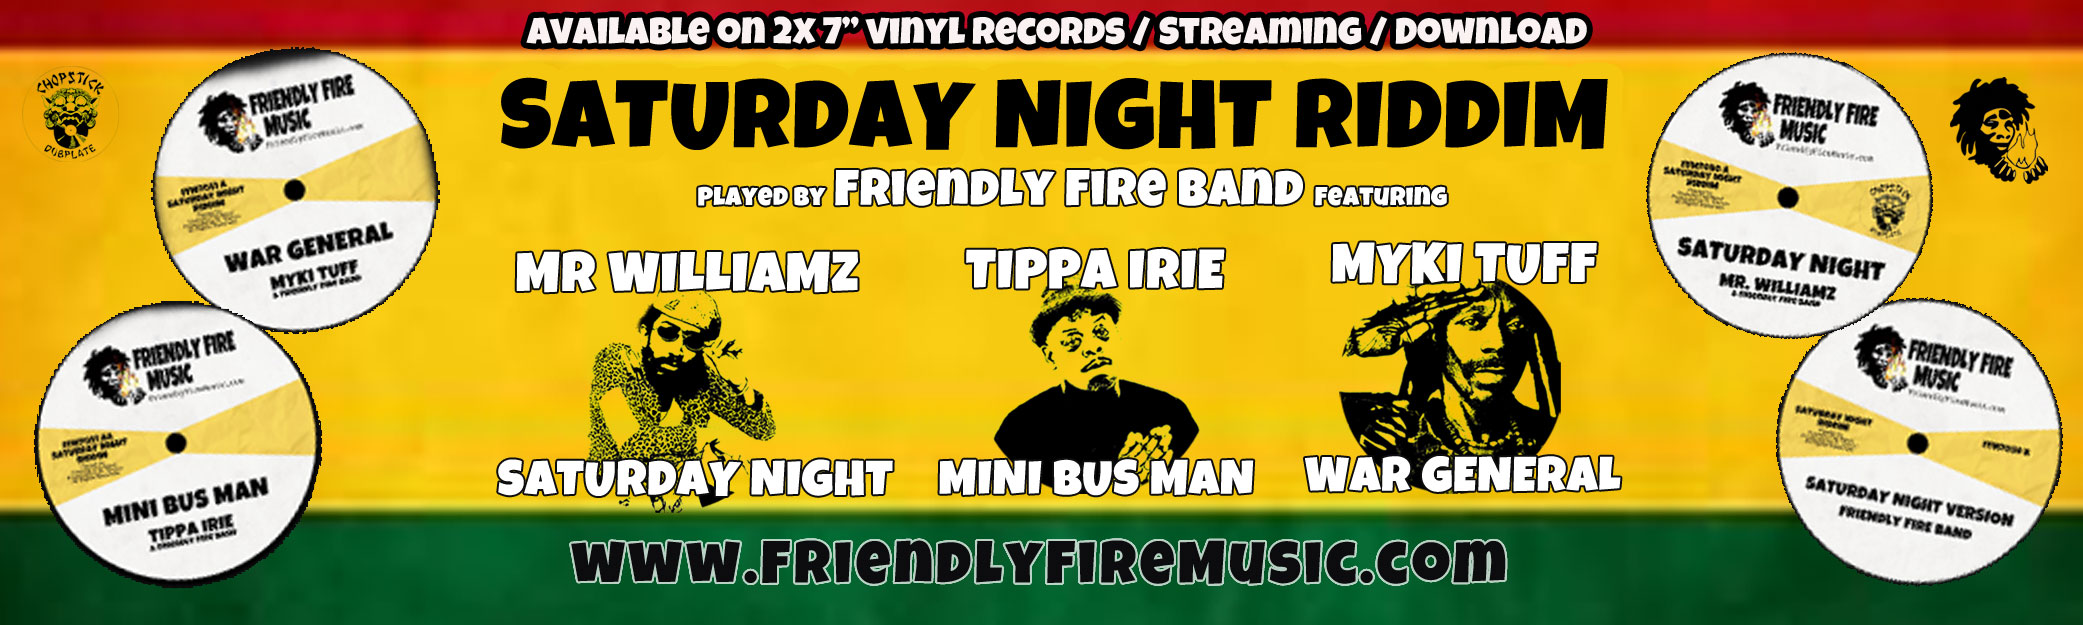 saturday-night-riddim-web-banner